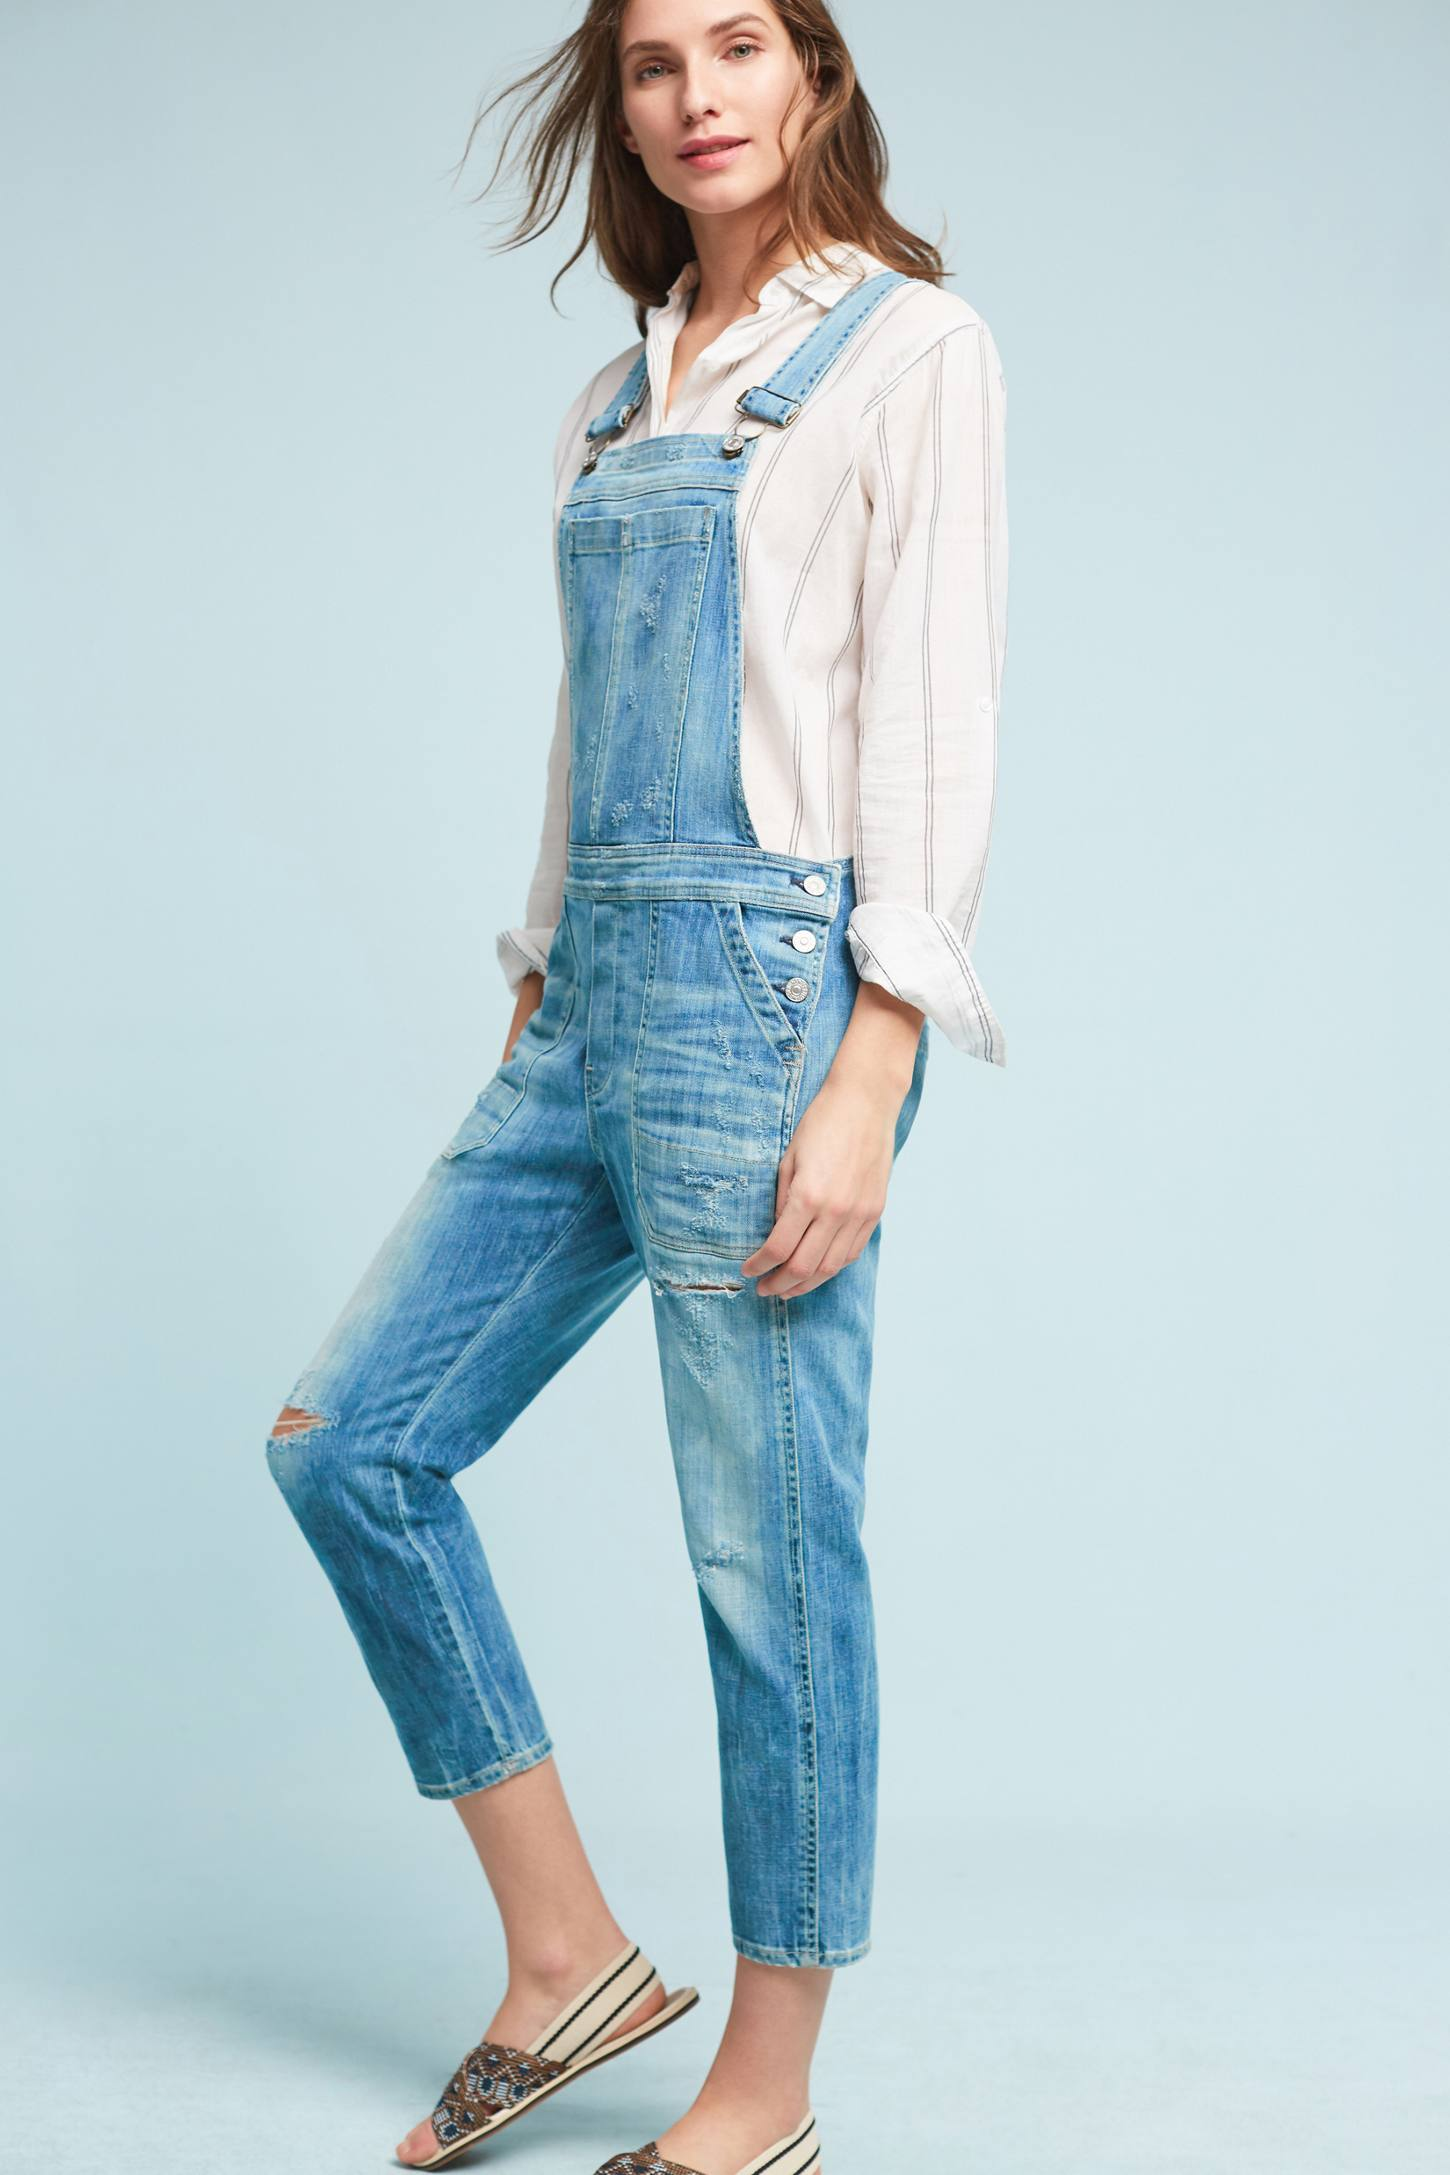 Slide View: 3: Citizens of Humanity Audrey Overalls